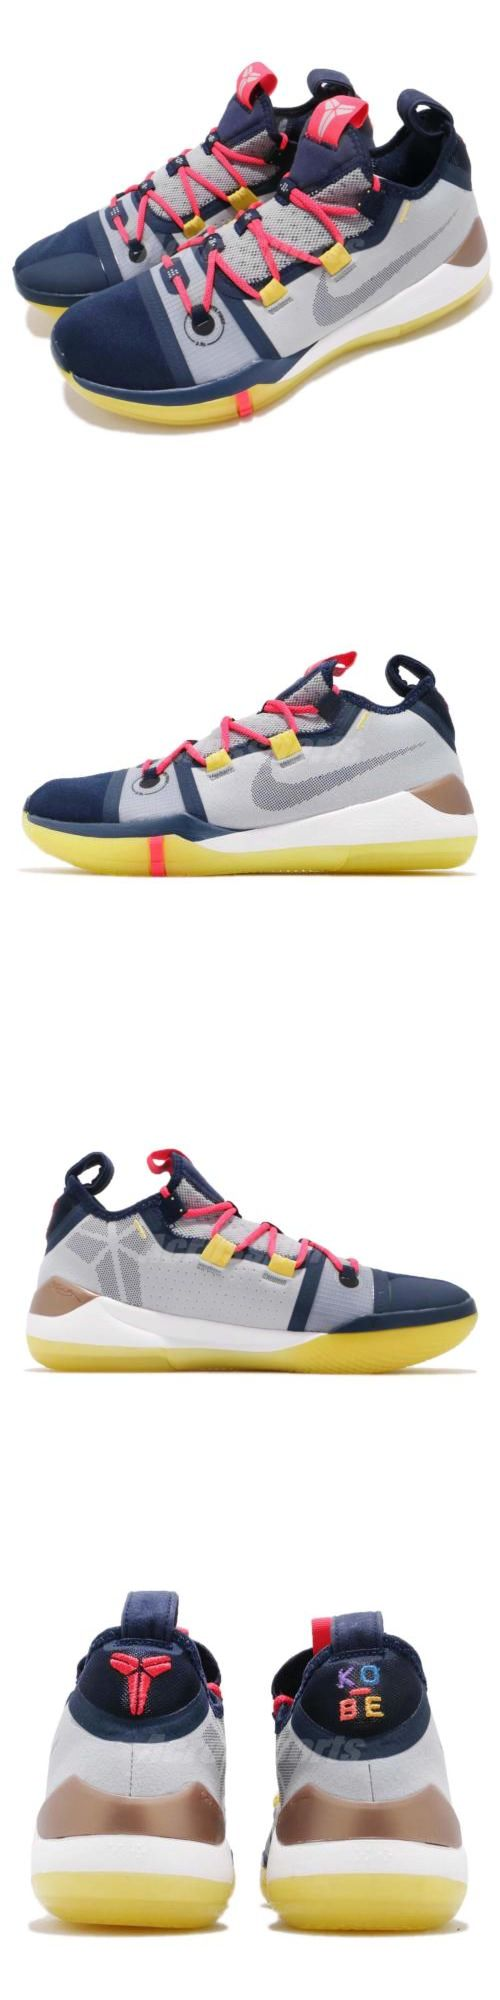 7449fdf52d1 Clothing Shoes and Accessories 158963  Nike Kobe Ad Mamba Day A.D. Ep Sail  Multi-Color Mens Basketball Shoes Av3556-100 -  BUY IT NOW ONLY   199.99 on  eBay!